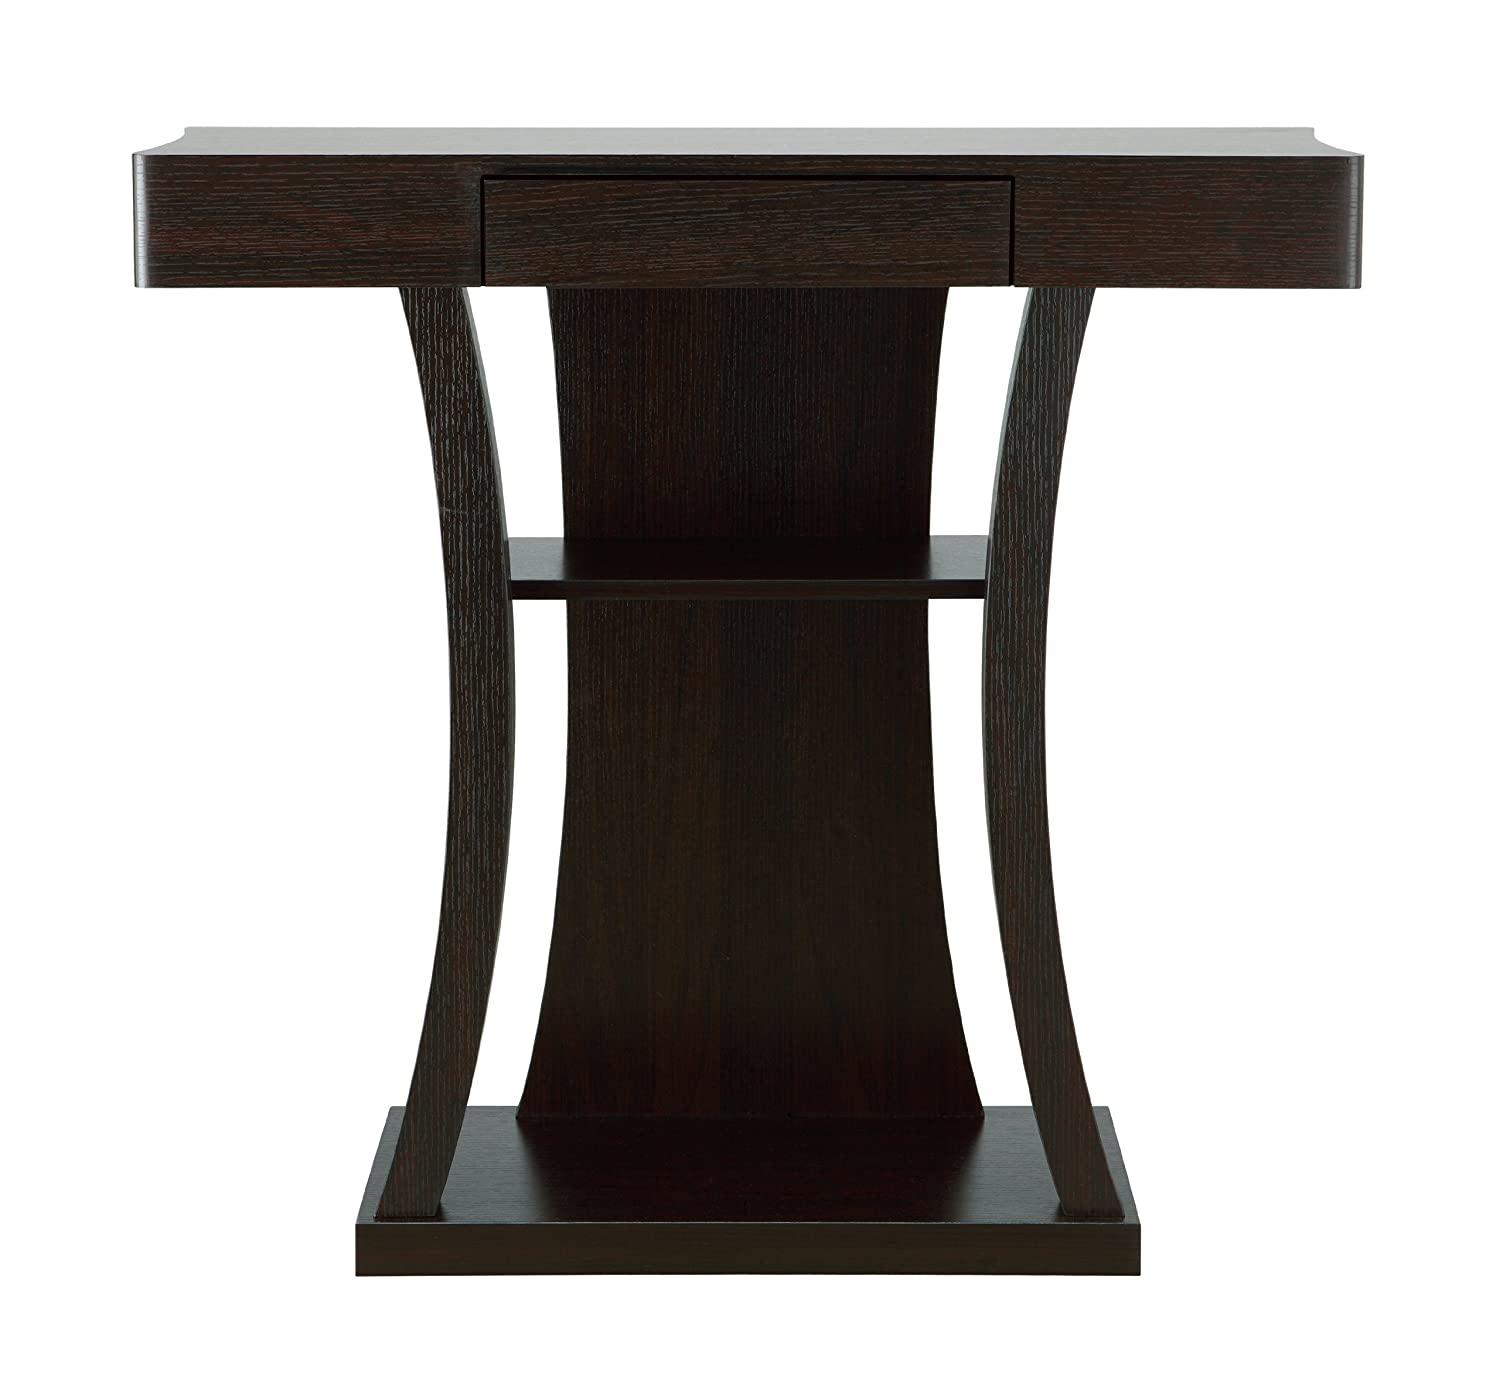 Furniture of America Kelvin Console Table with Storage Drawer, Cappuccino Finish Enitial Lab IDI-13626